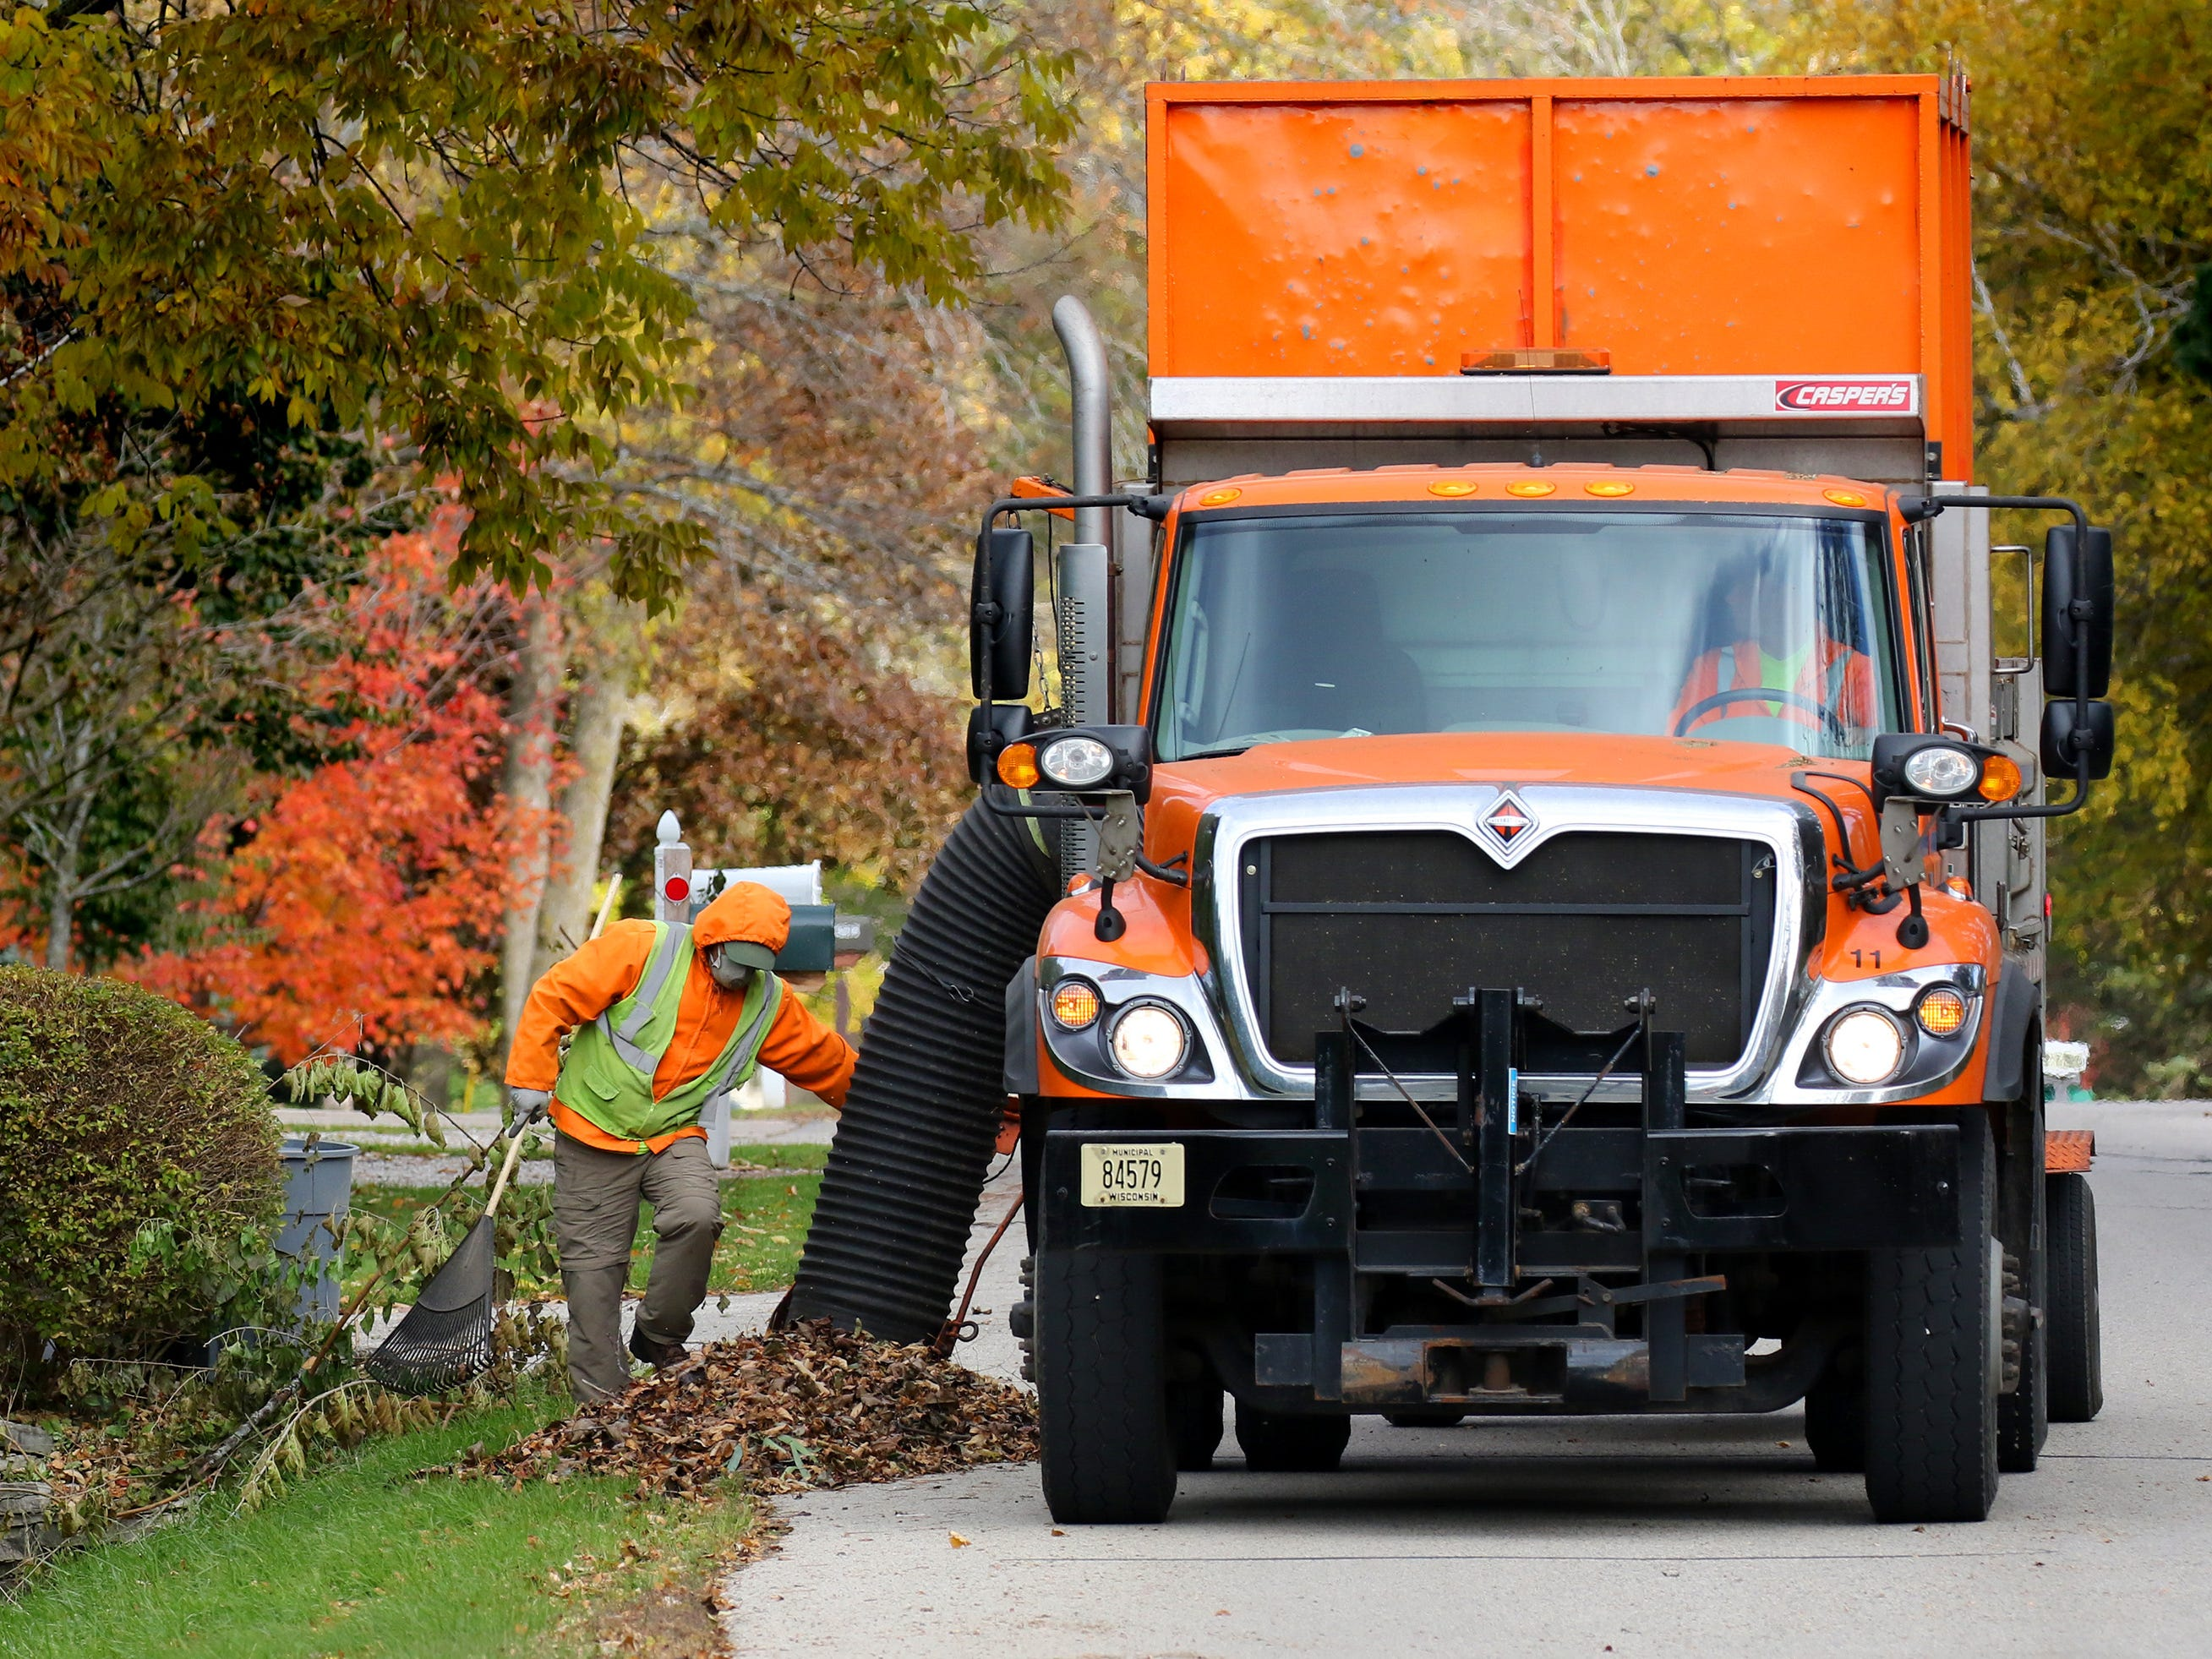 Village of Fox Point employees provide waste collection services from residents' driveways, along with yard waste collection and roadside leaf removal in the fall. Recycling collection is contracted out to a company.